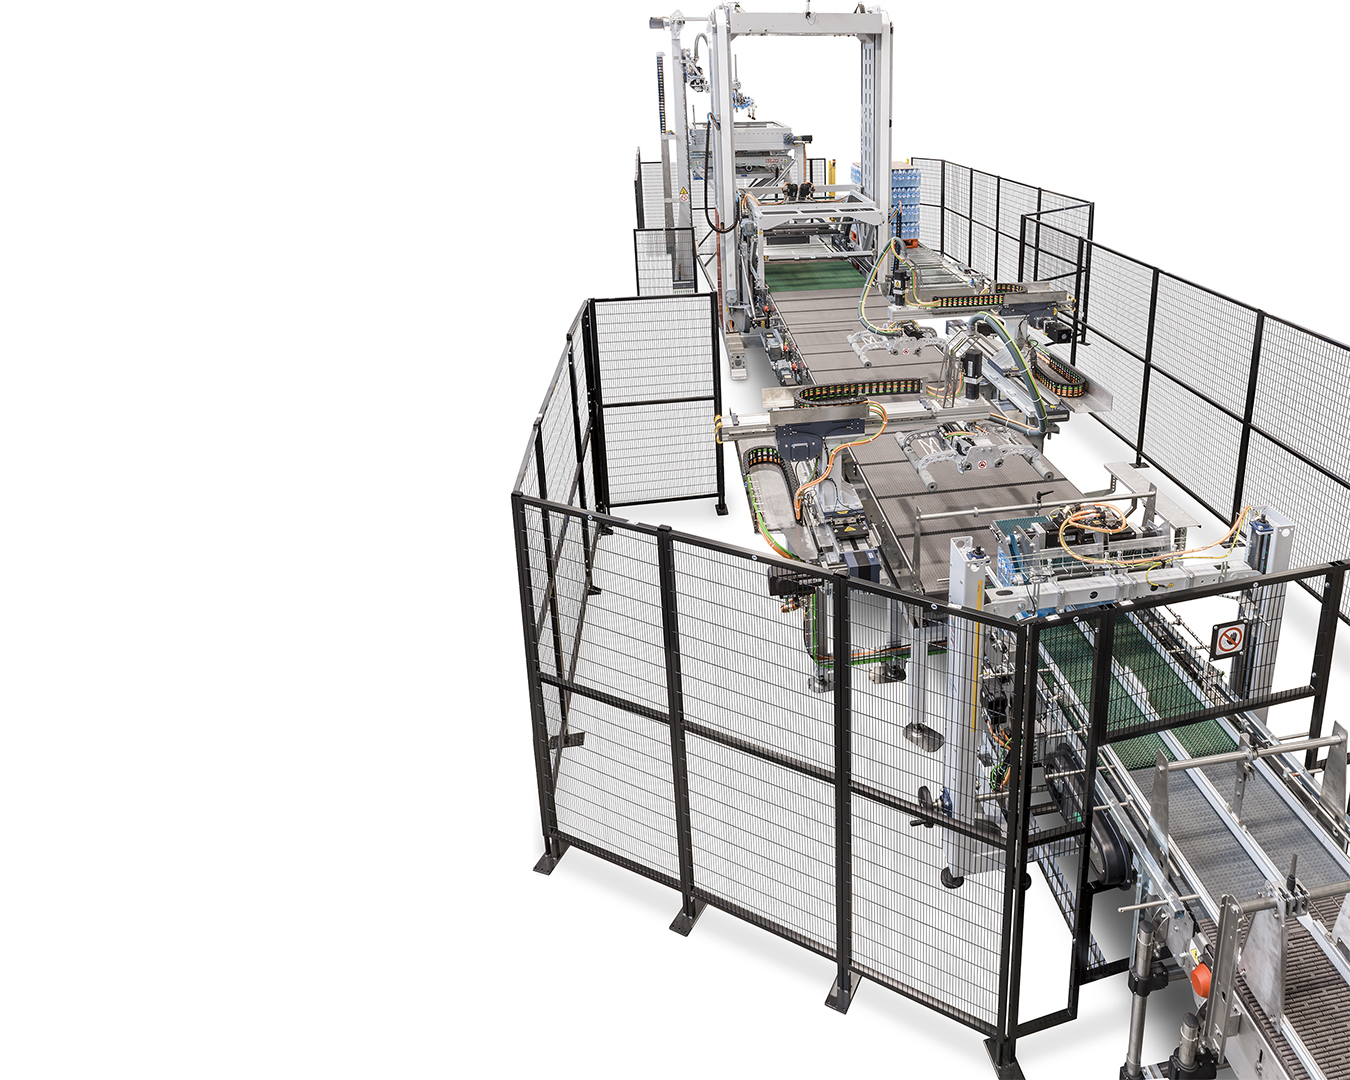 Product picture of Orion Advance: low level infeed palletizer